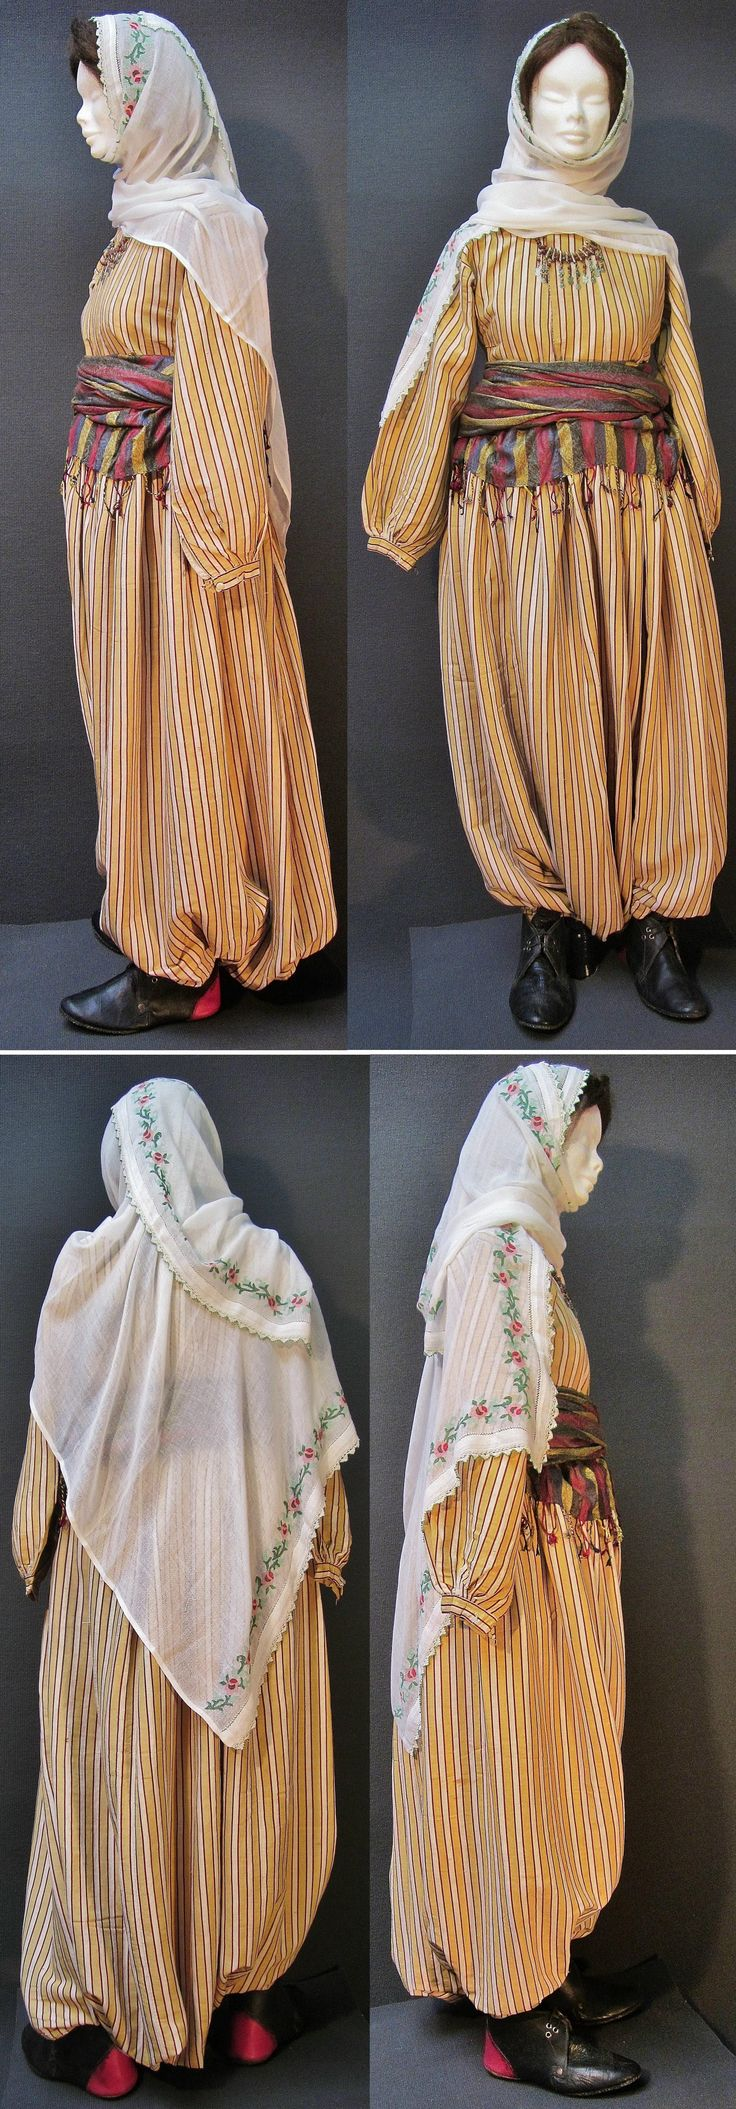 A traditional daily costume from the Konya province.  Middle-class urban style, worn at home, ca. 1900-1925.  Containing: a silk ensemble ('gömlek'/shirt + 'şalvar'/baggy trousers),  a large embroidered 'yazma' (headscarf), a silk  'kuşak' (waist band) and low boots-like leather shoeware. (Kavak Costume Collection - Antwerpen/Belgium).